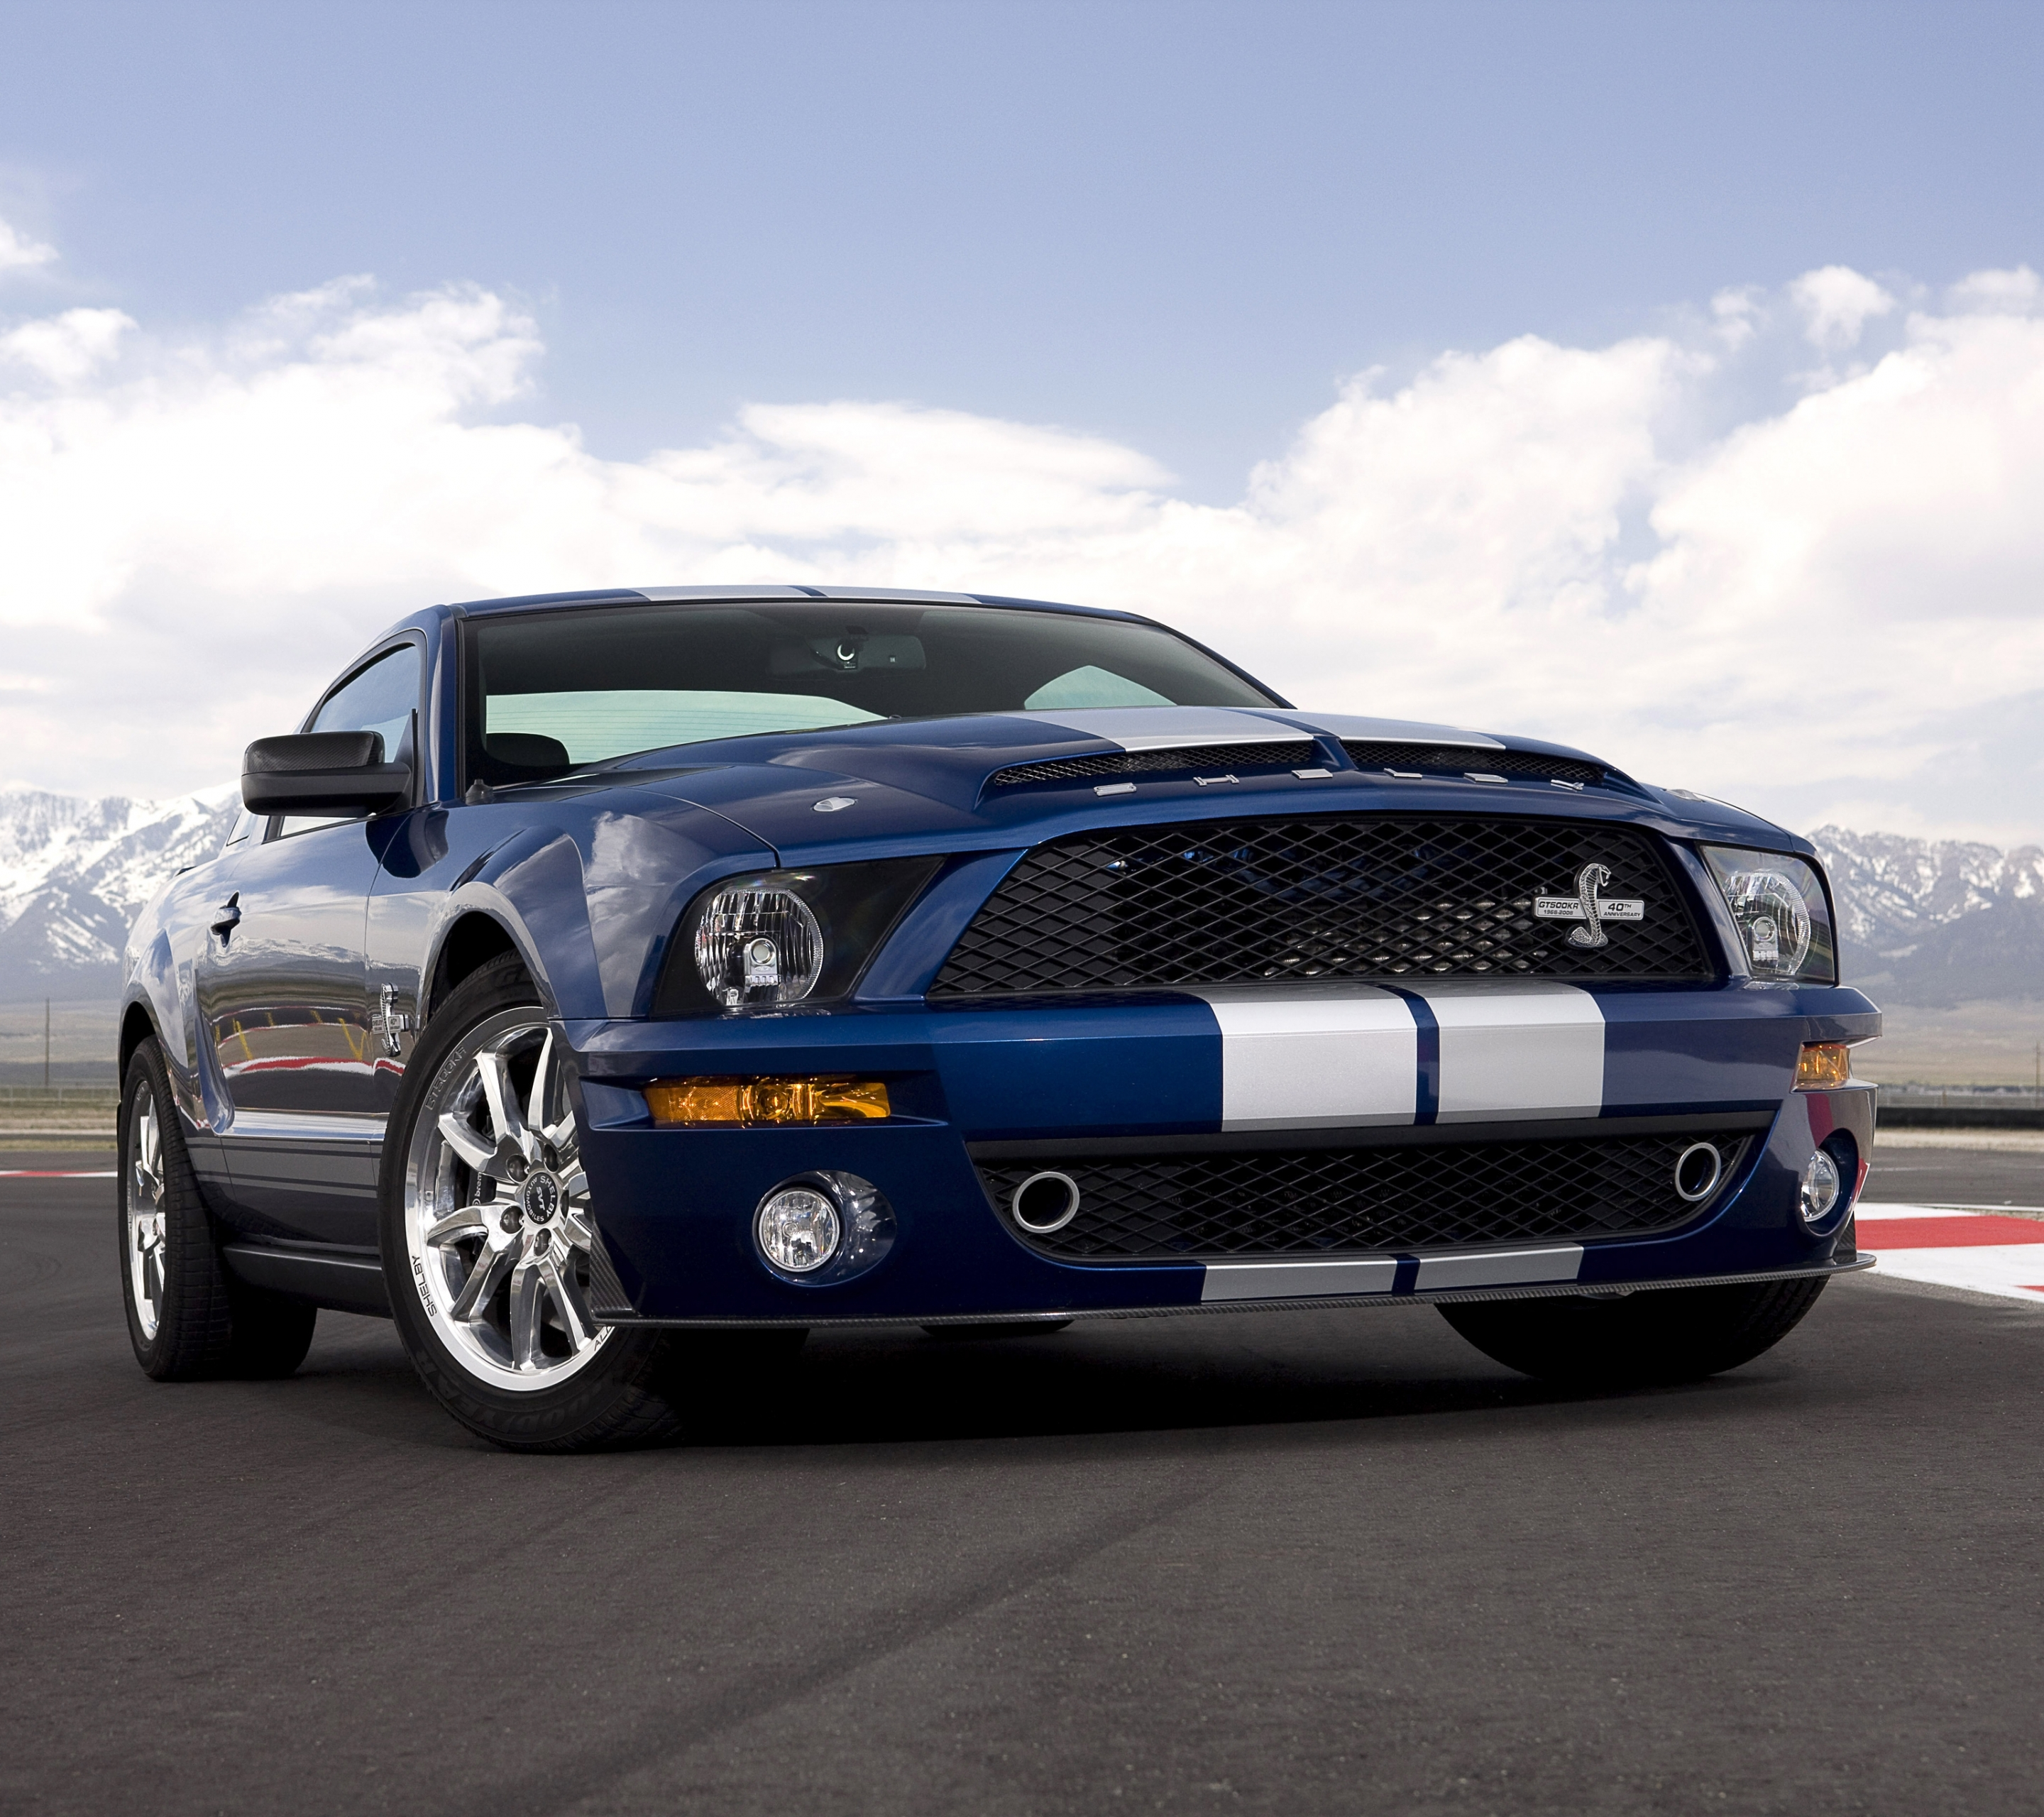 Vehicles ford mustang shelby gt500 2880x2560 mobile wallpaper wallpaper 596085